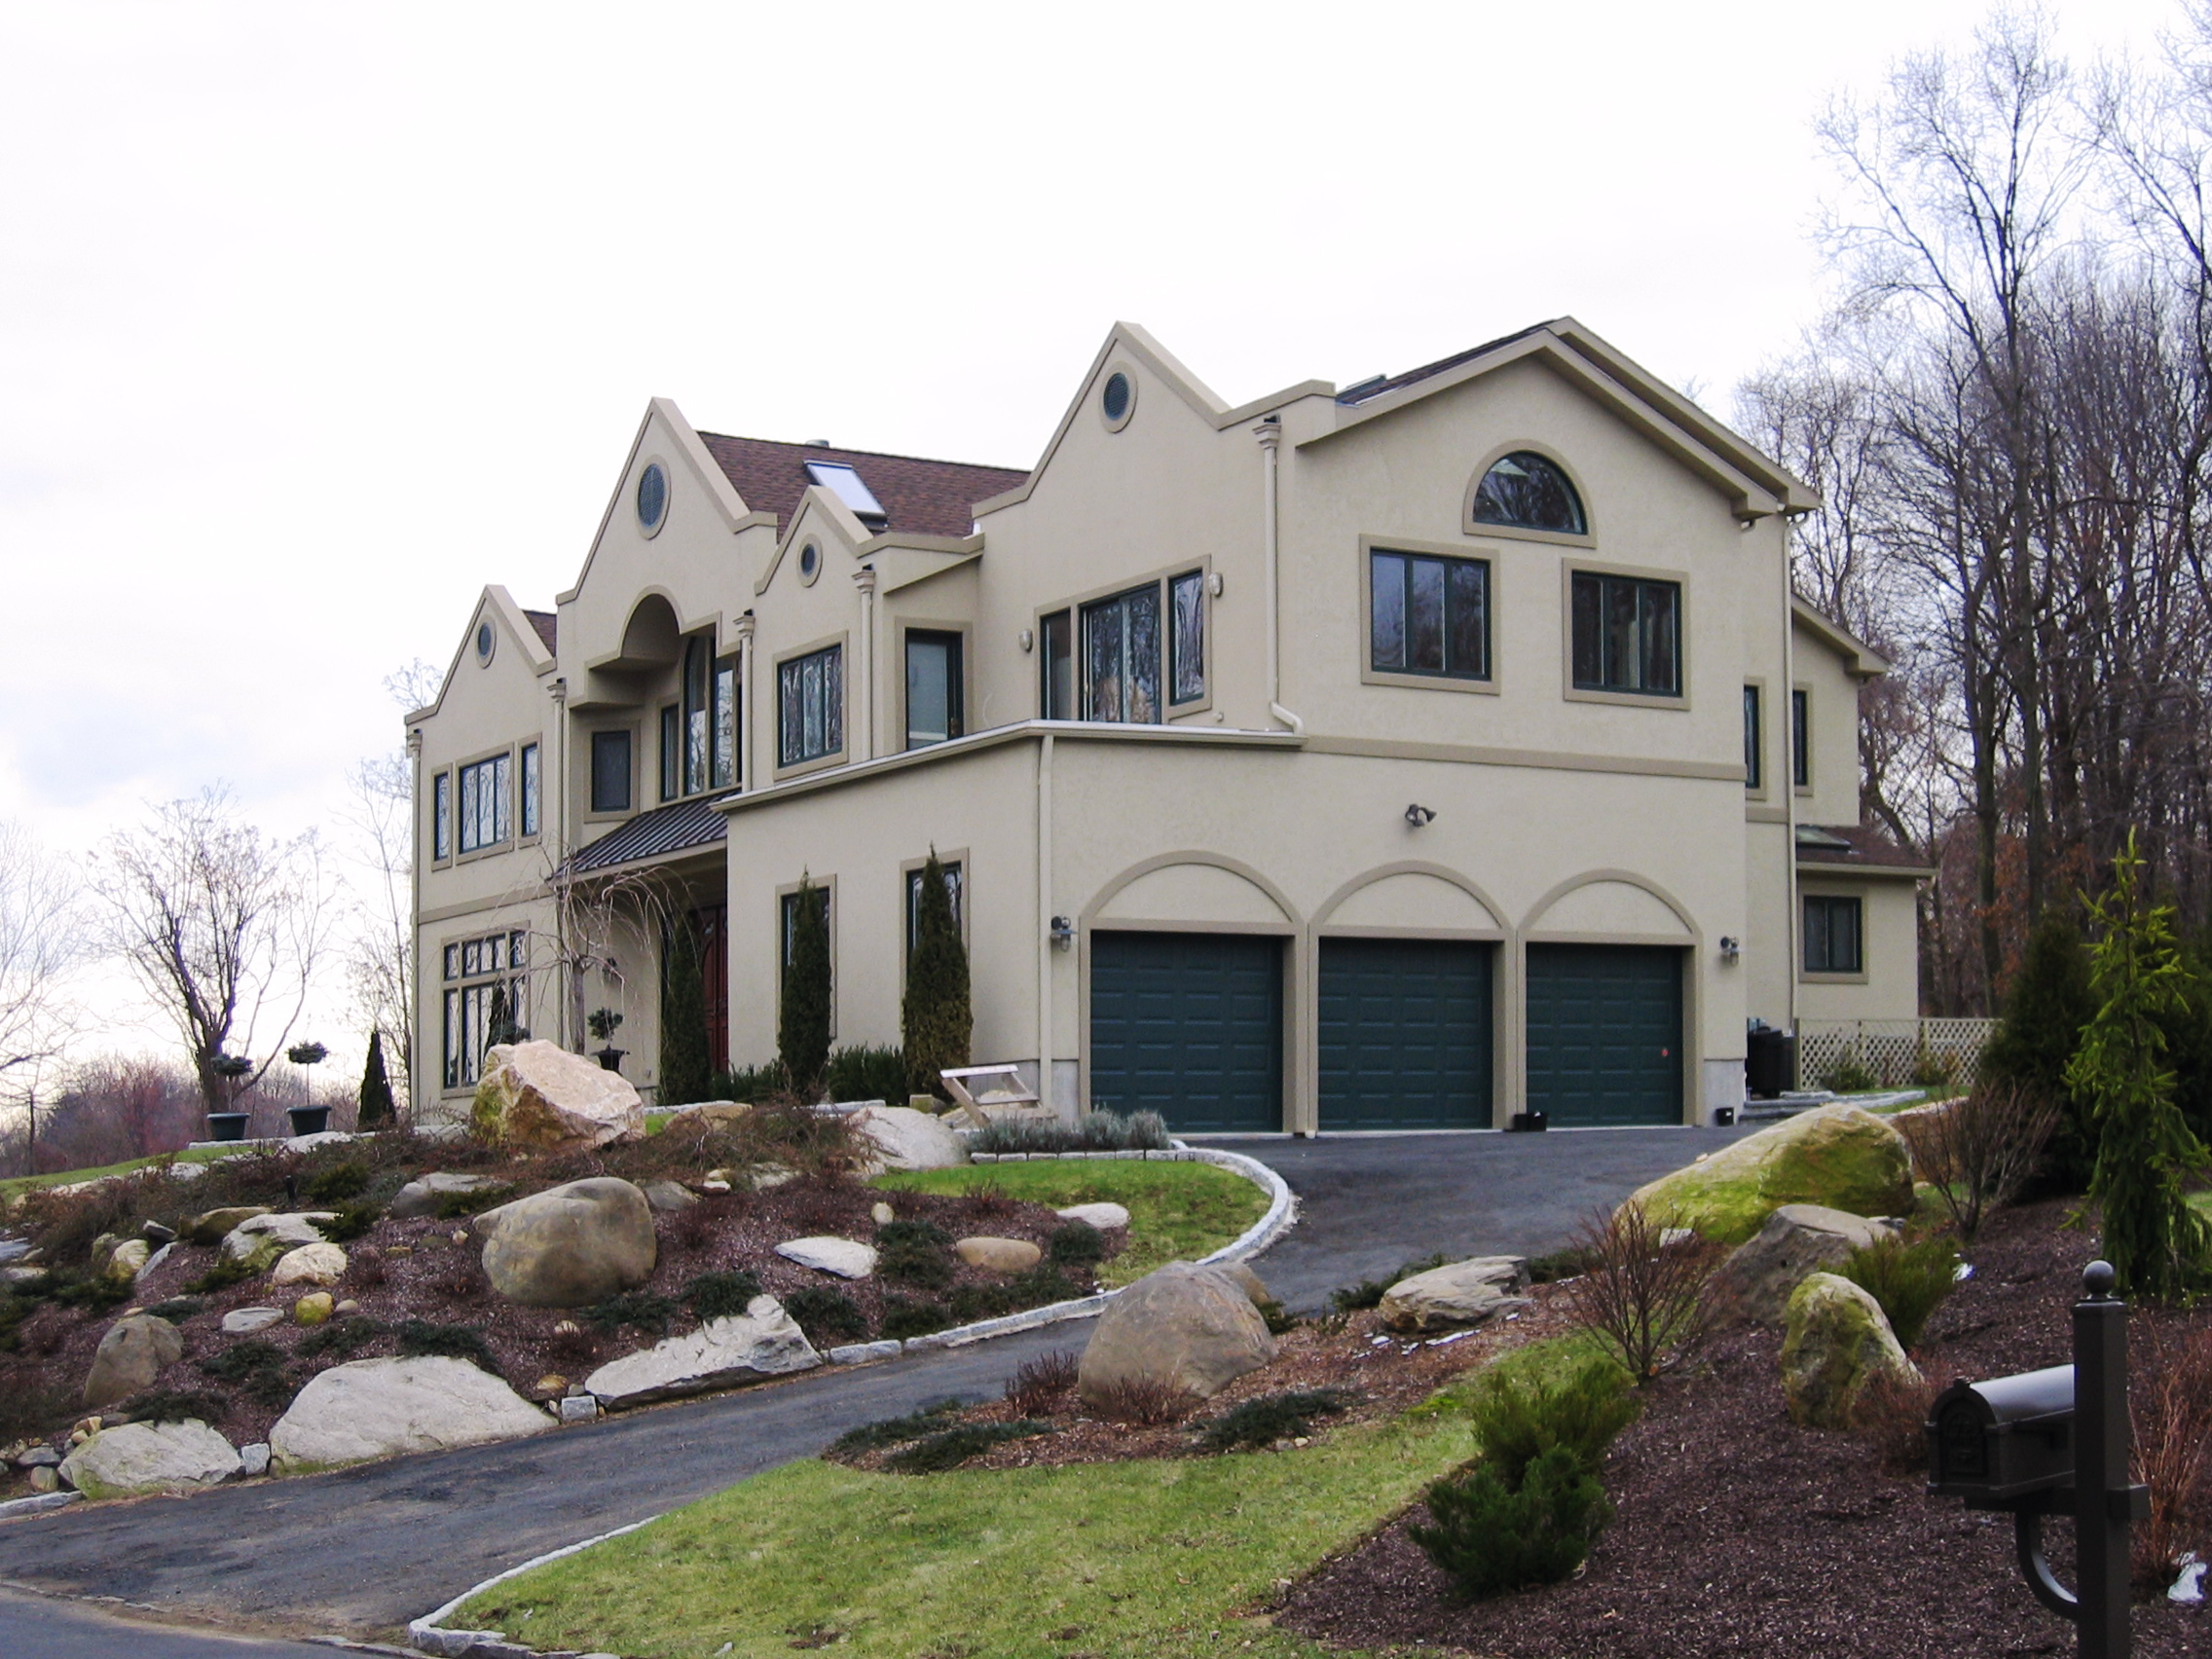 New Residence Greenburgh, NY